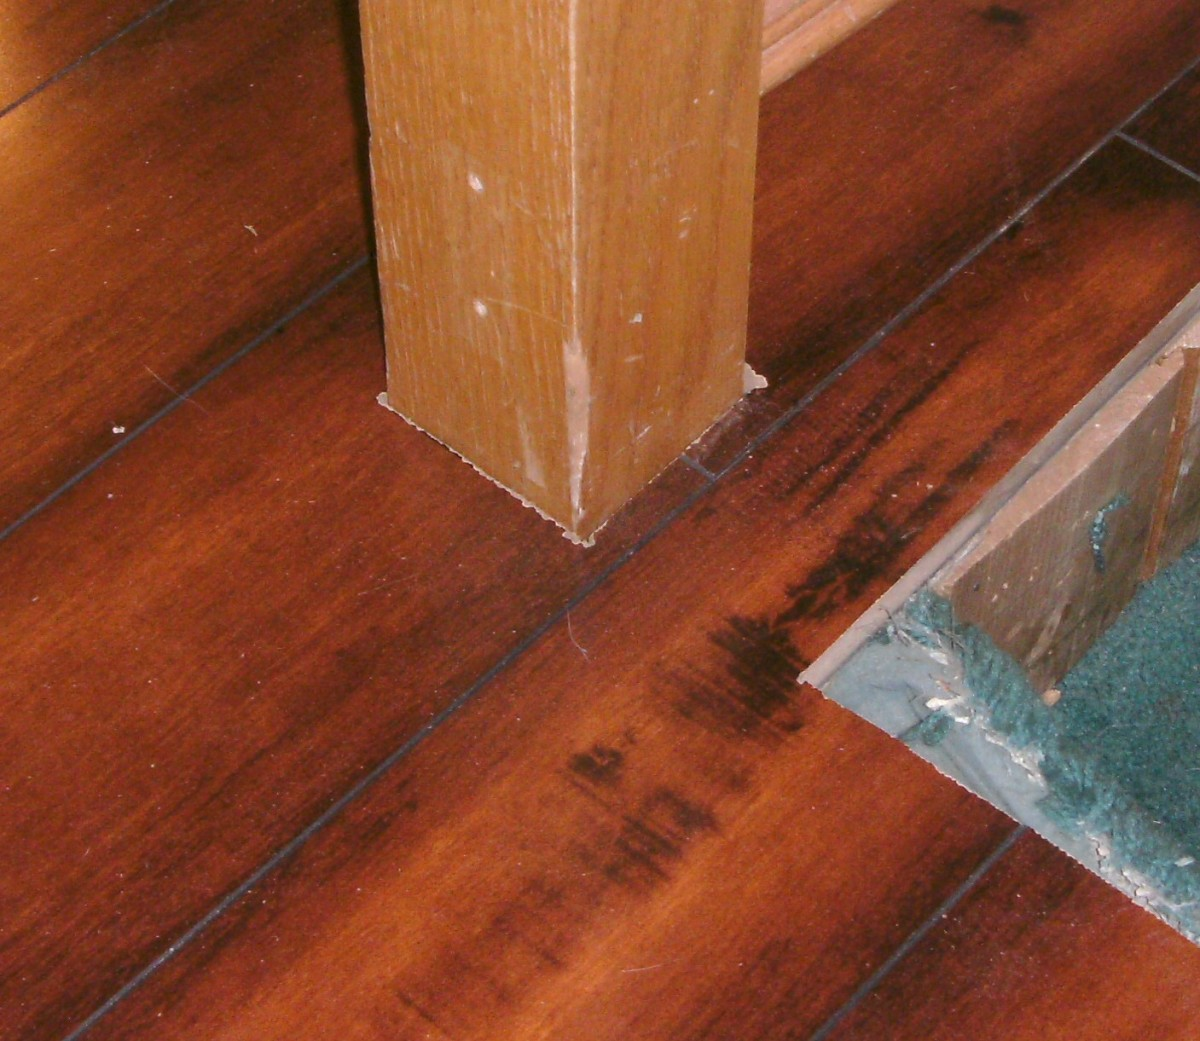 Blowup of the bannister; there are actually two planks, each with 1/2 of the hole for the bannister.